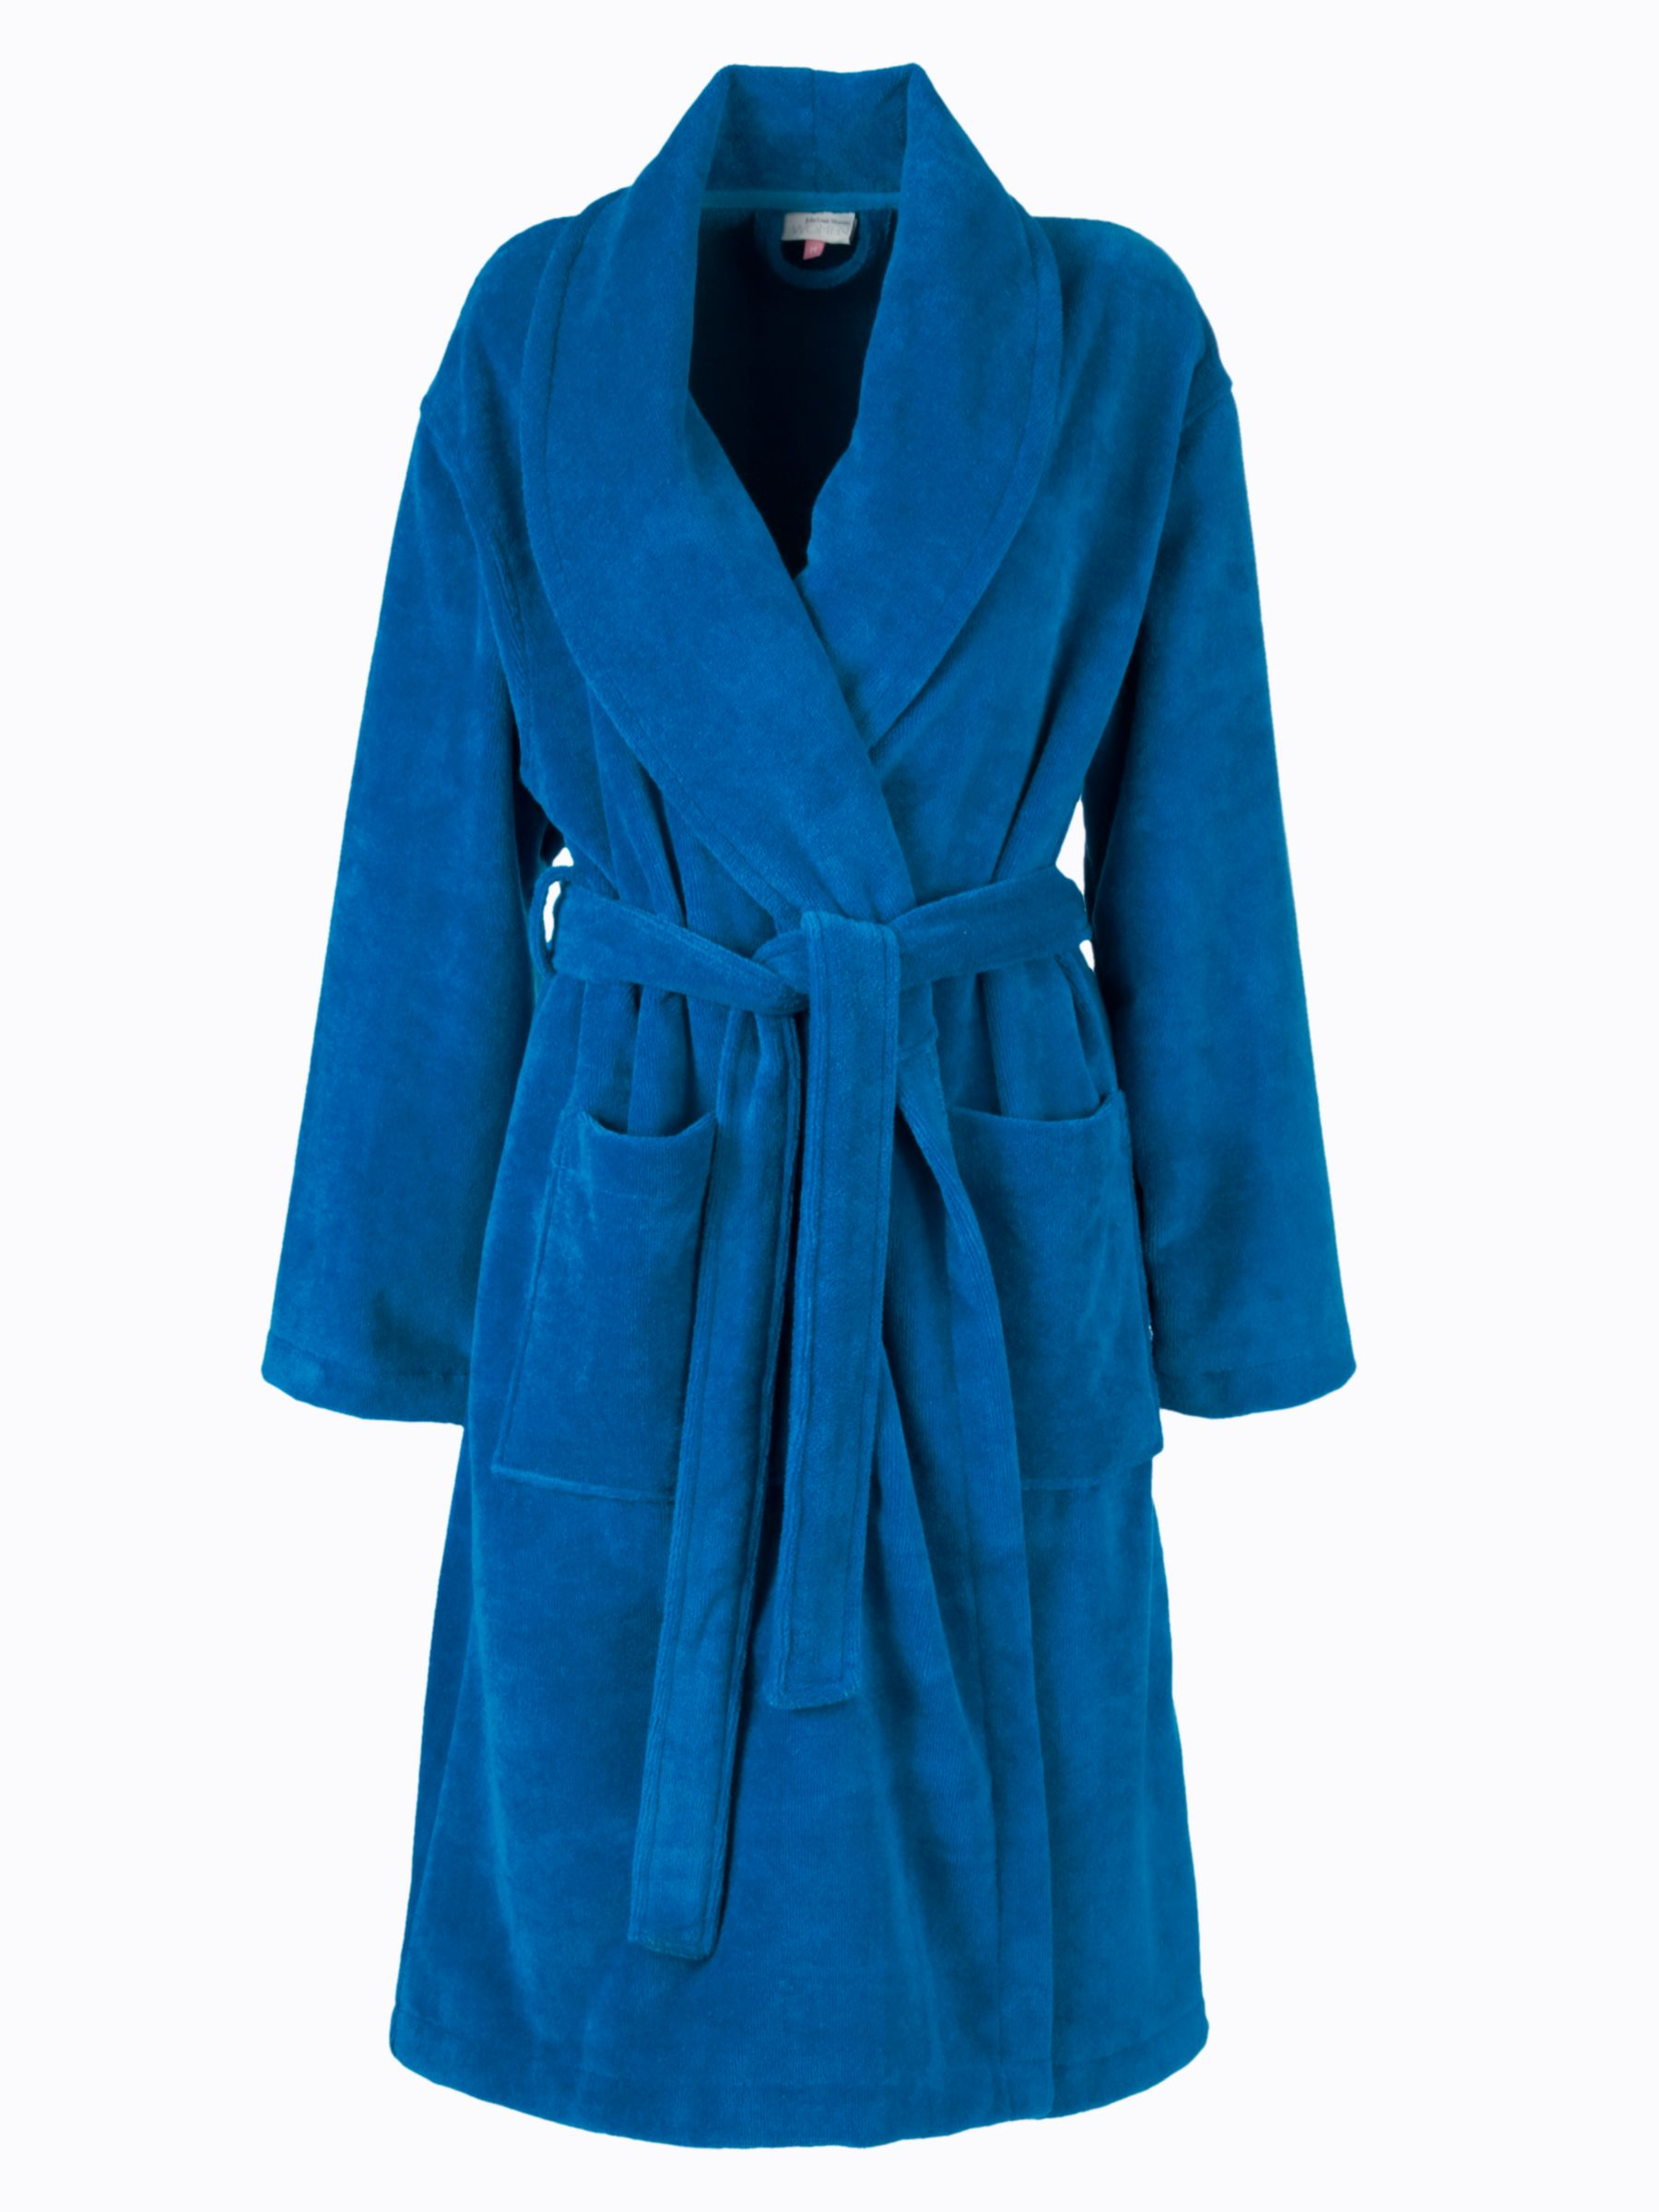 John Lewis Velour Robe, Teal